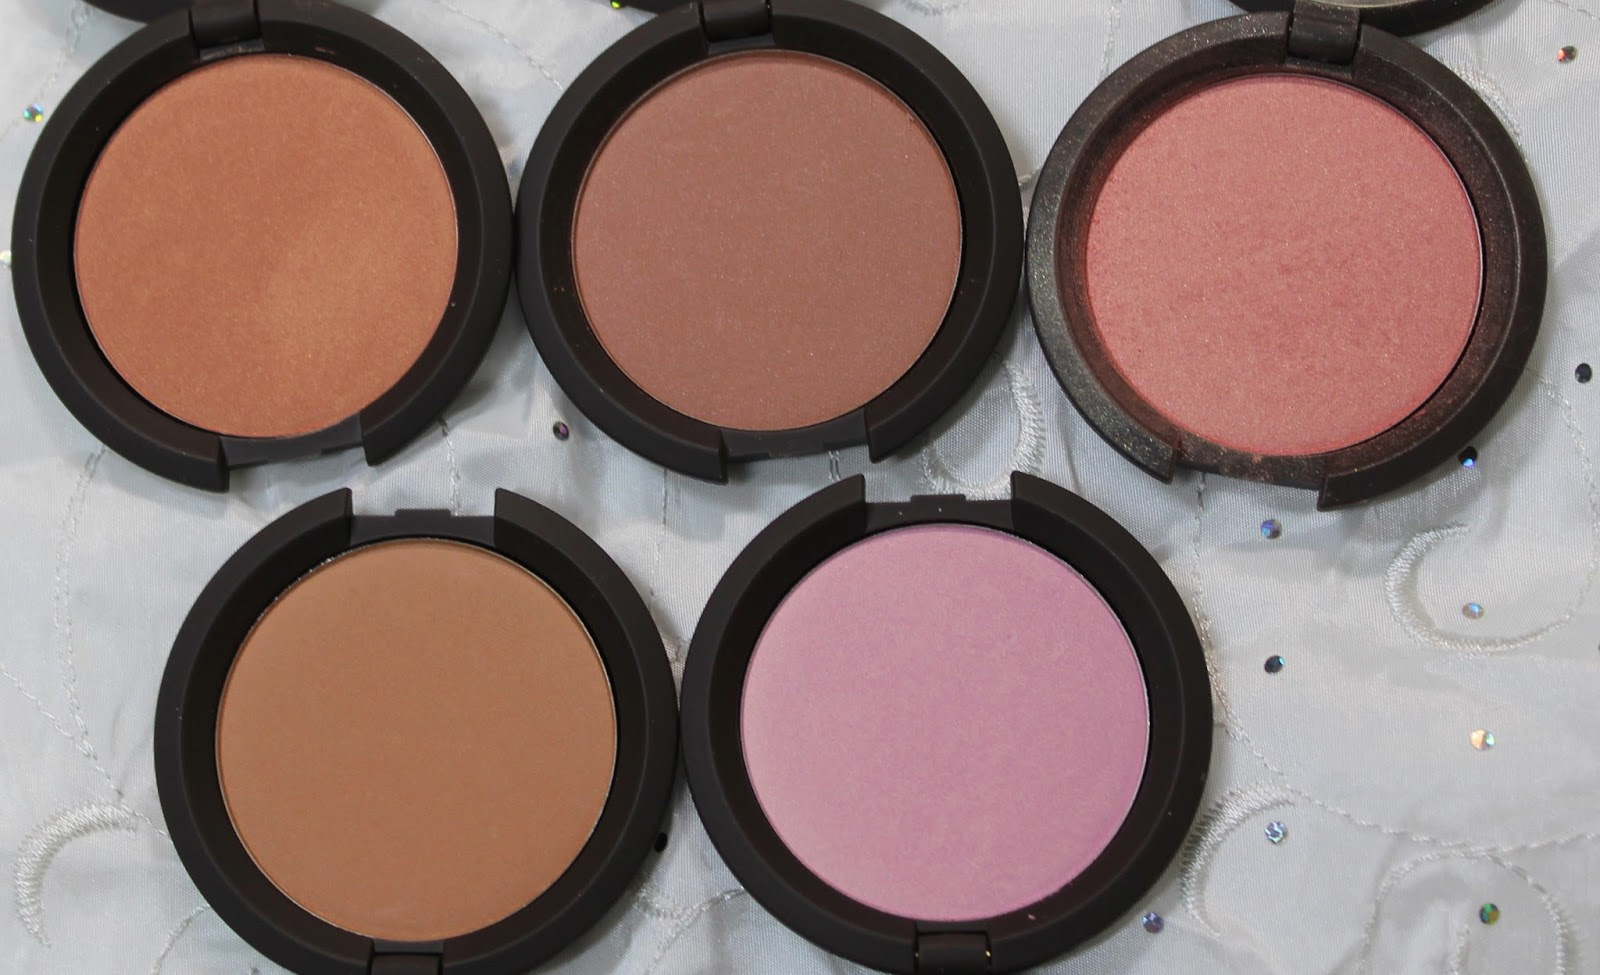 LVMAKEUP: Becca Mineral Blush Review and Swatches